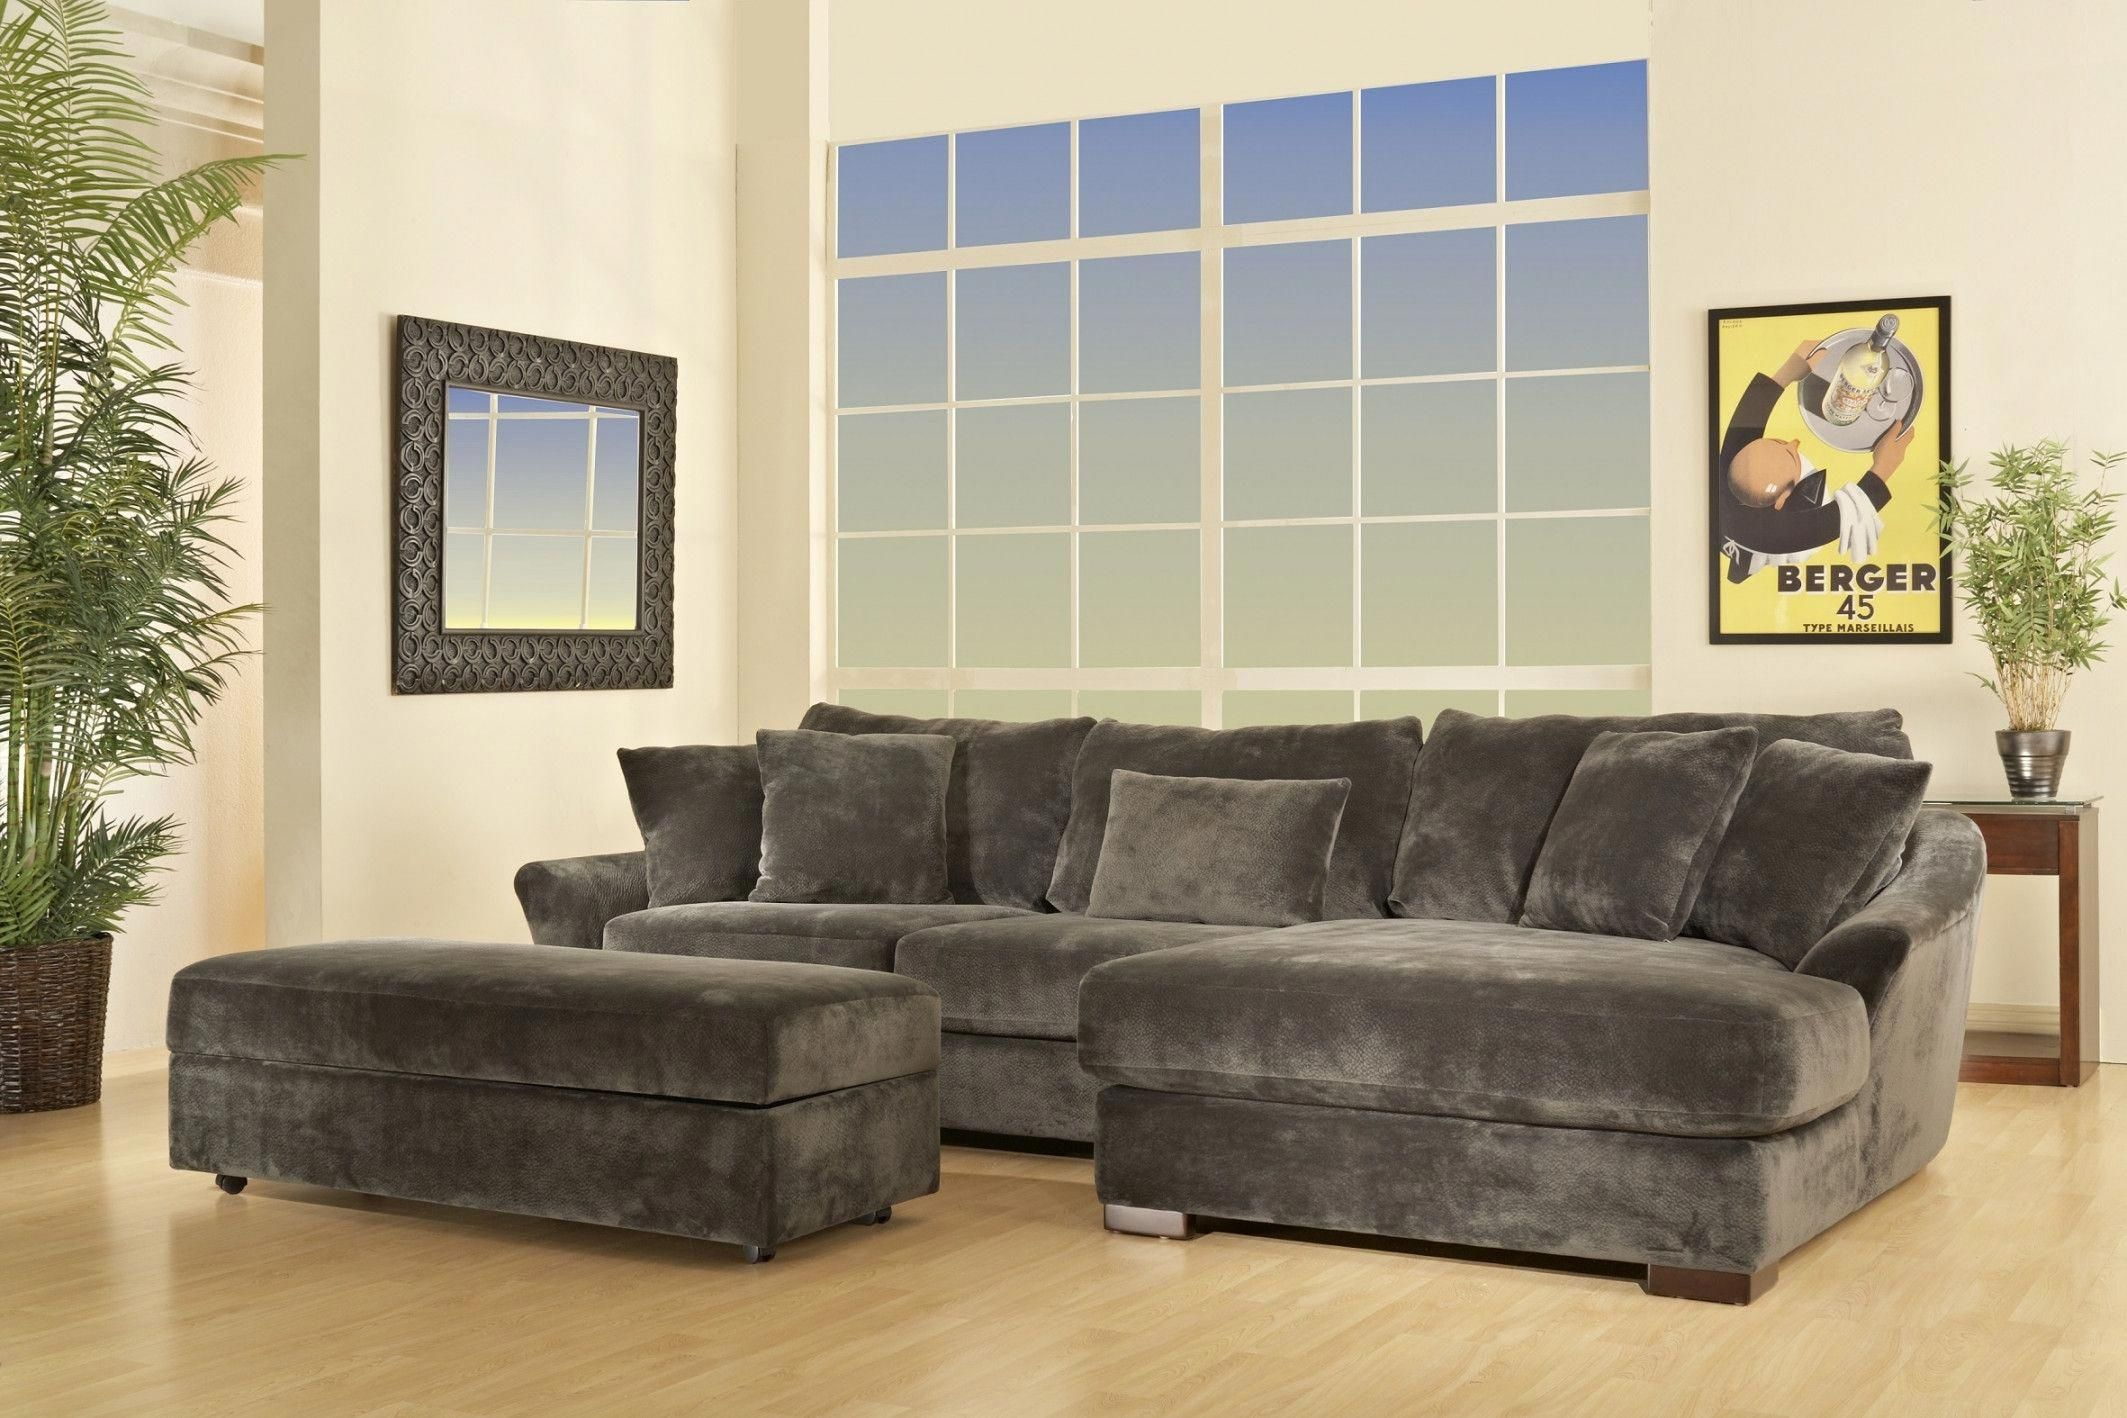 Sofas In Atlanta Family Room With Leather Sofa Sectional At 2018 Cheap Furniture Stores Https Tany Net P